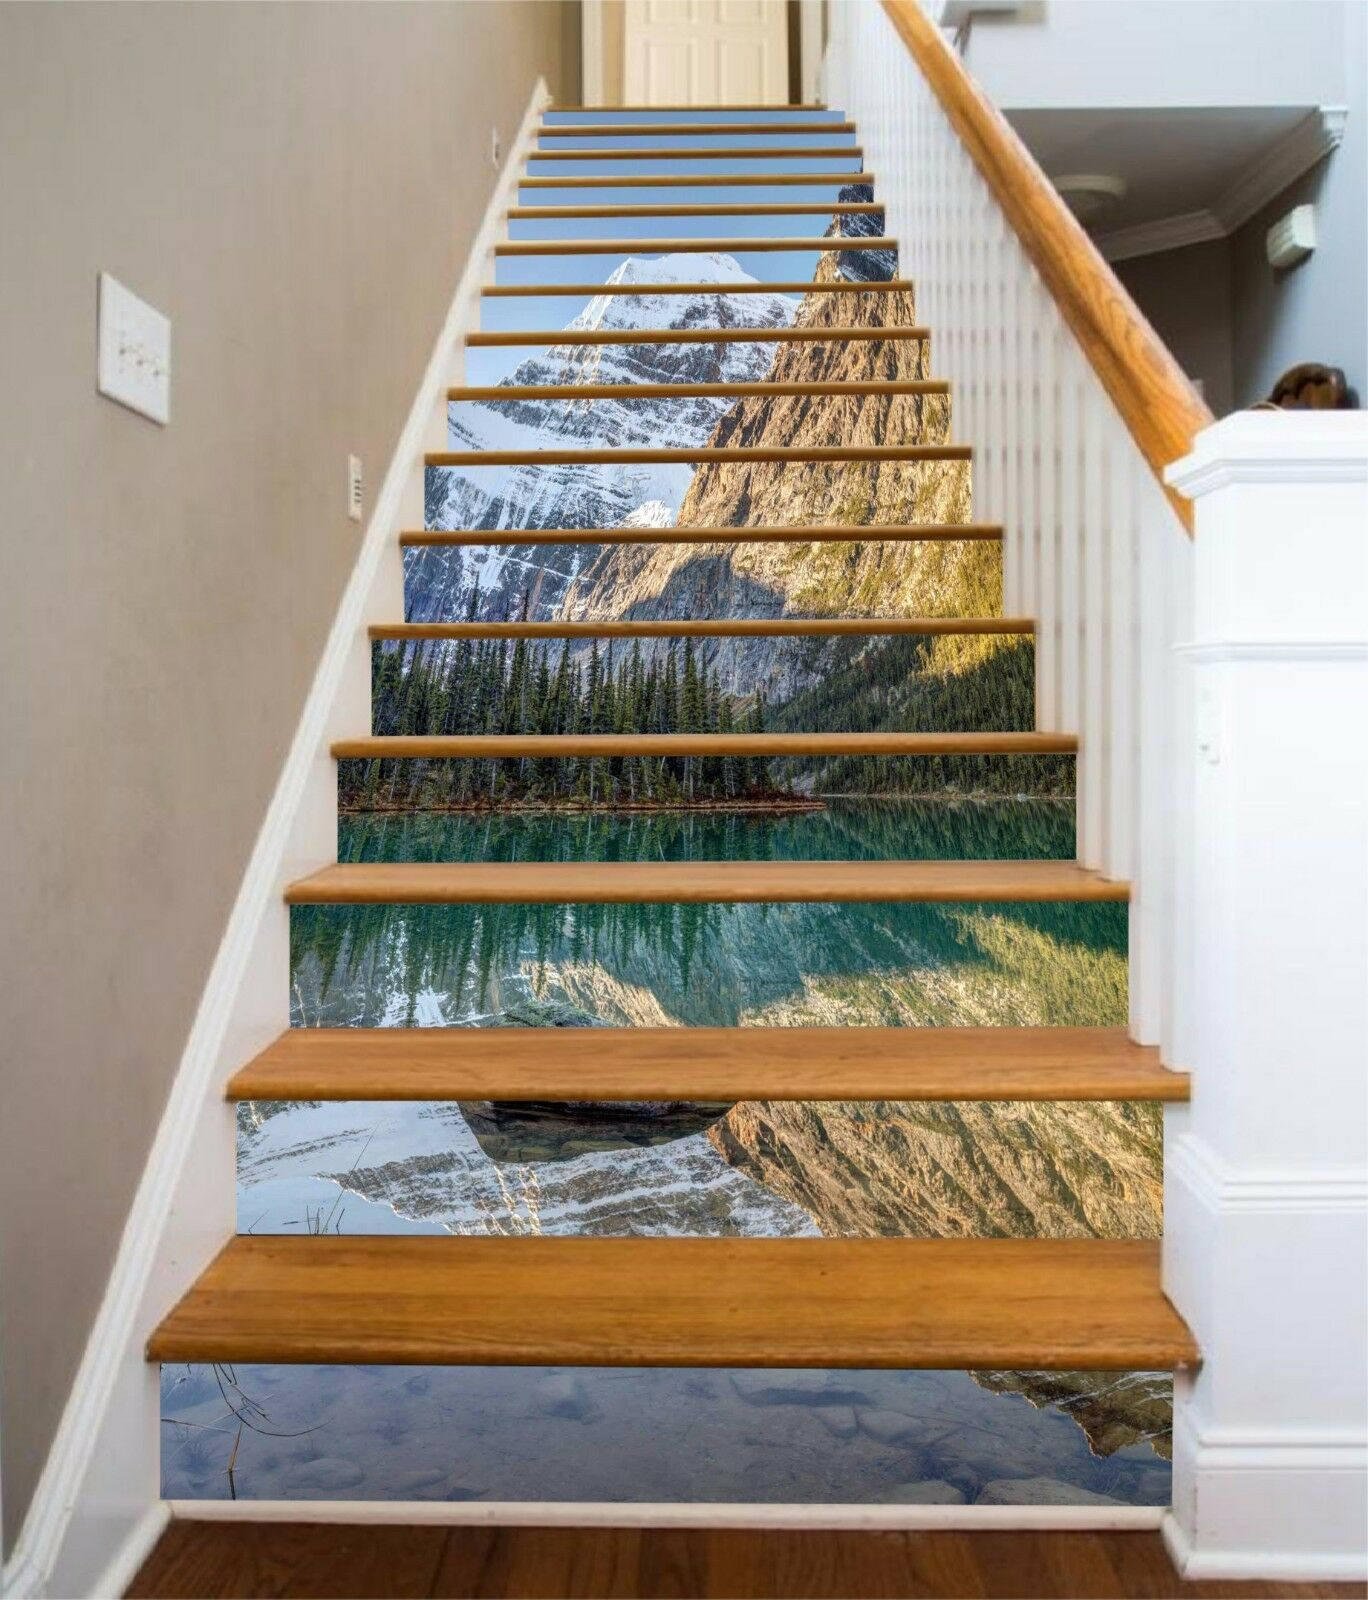 3D Lake View 218 Stair Risers Decoration Photo Mural Vinyl Decal Wallpaper AU